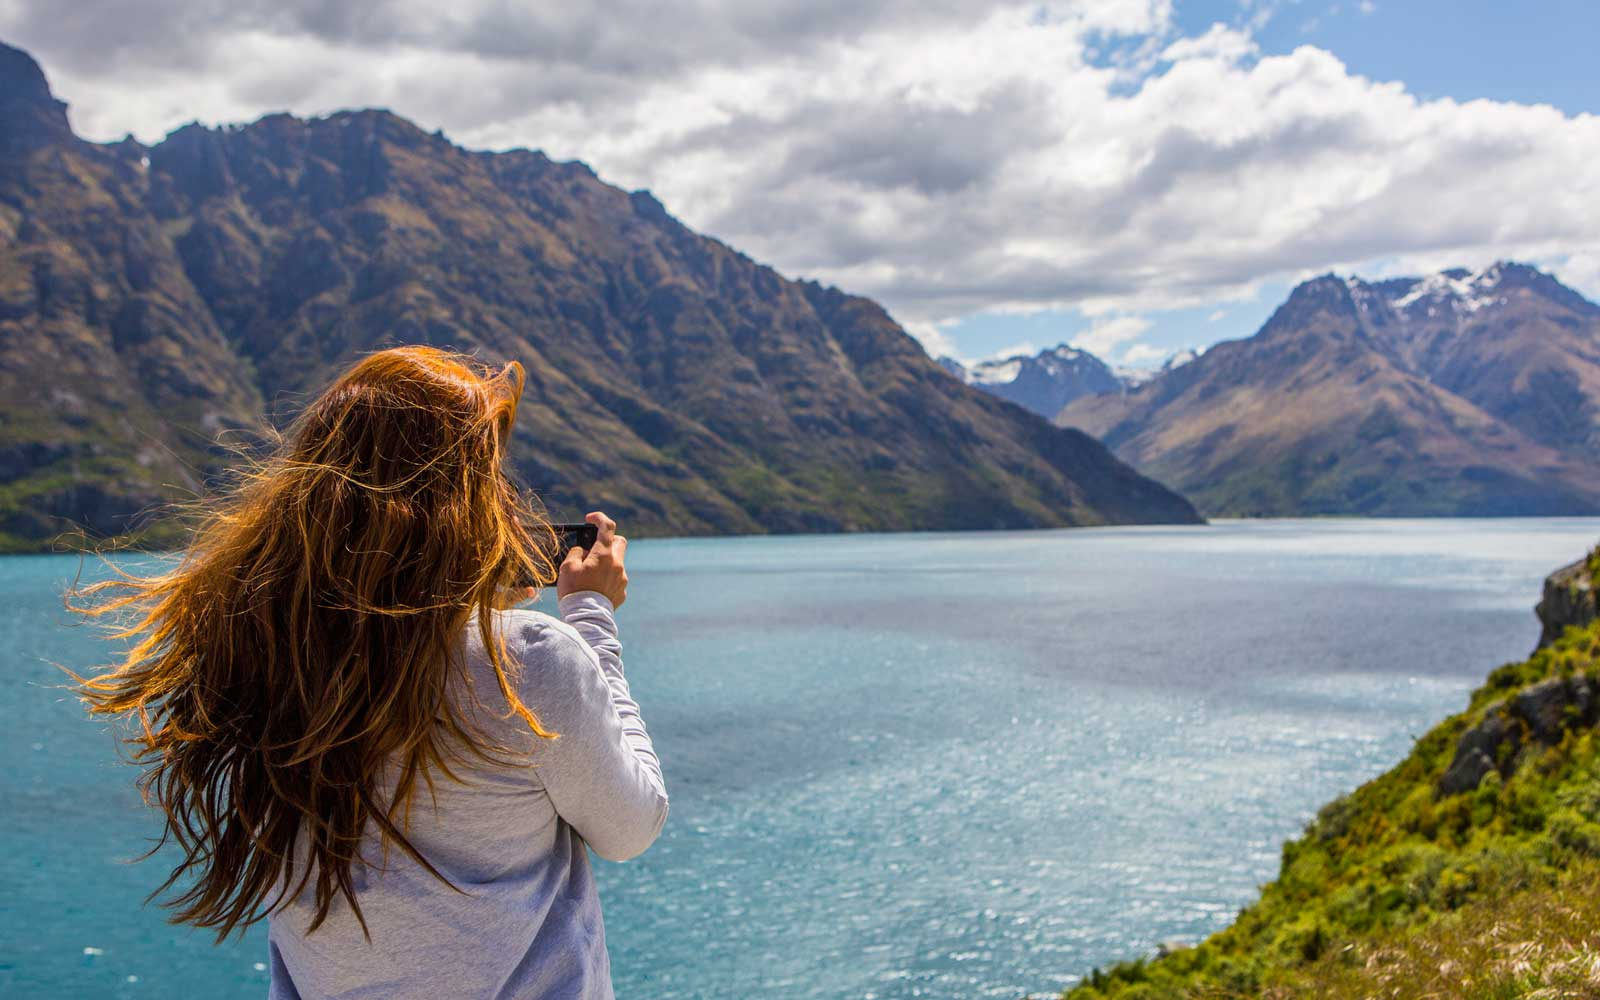 How to Spend the Ultimate, Thrill-seeking Week in New Zealand